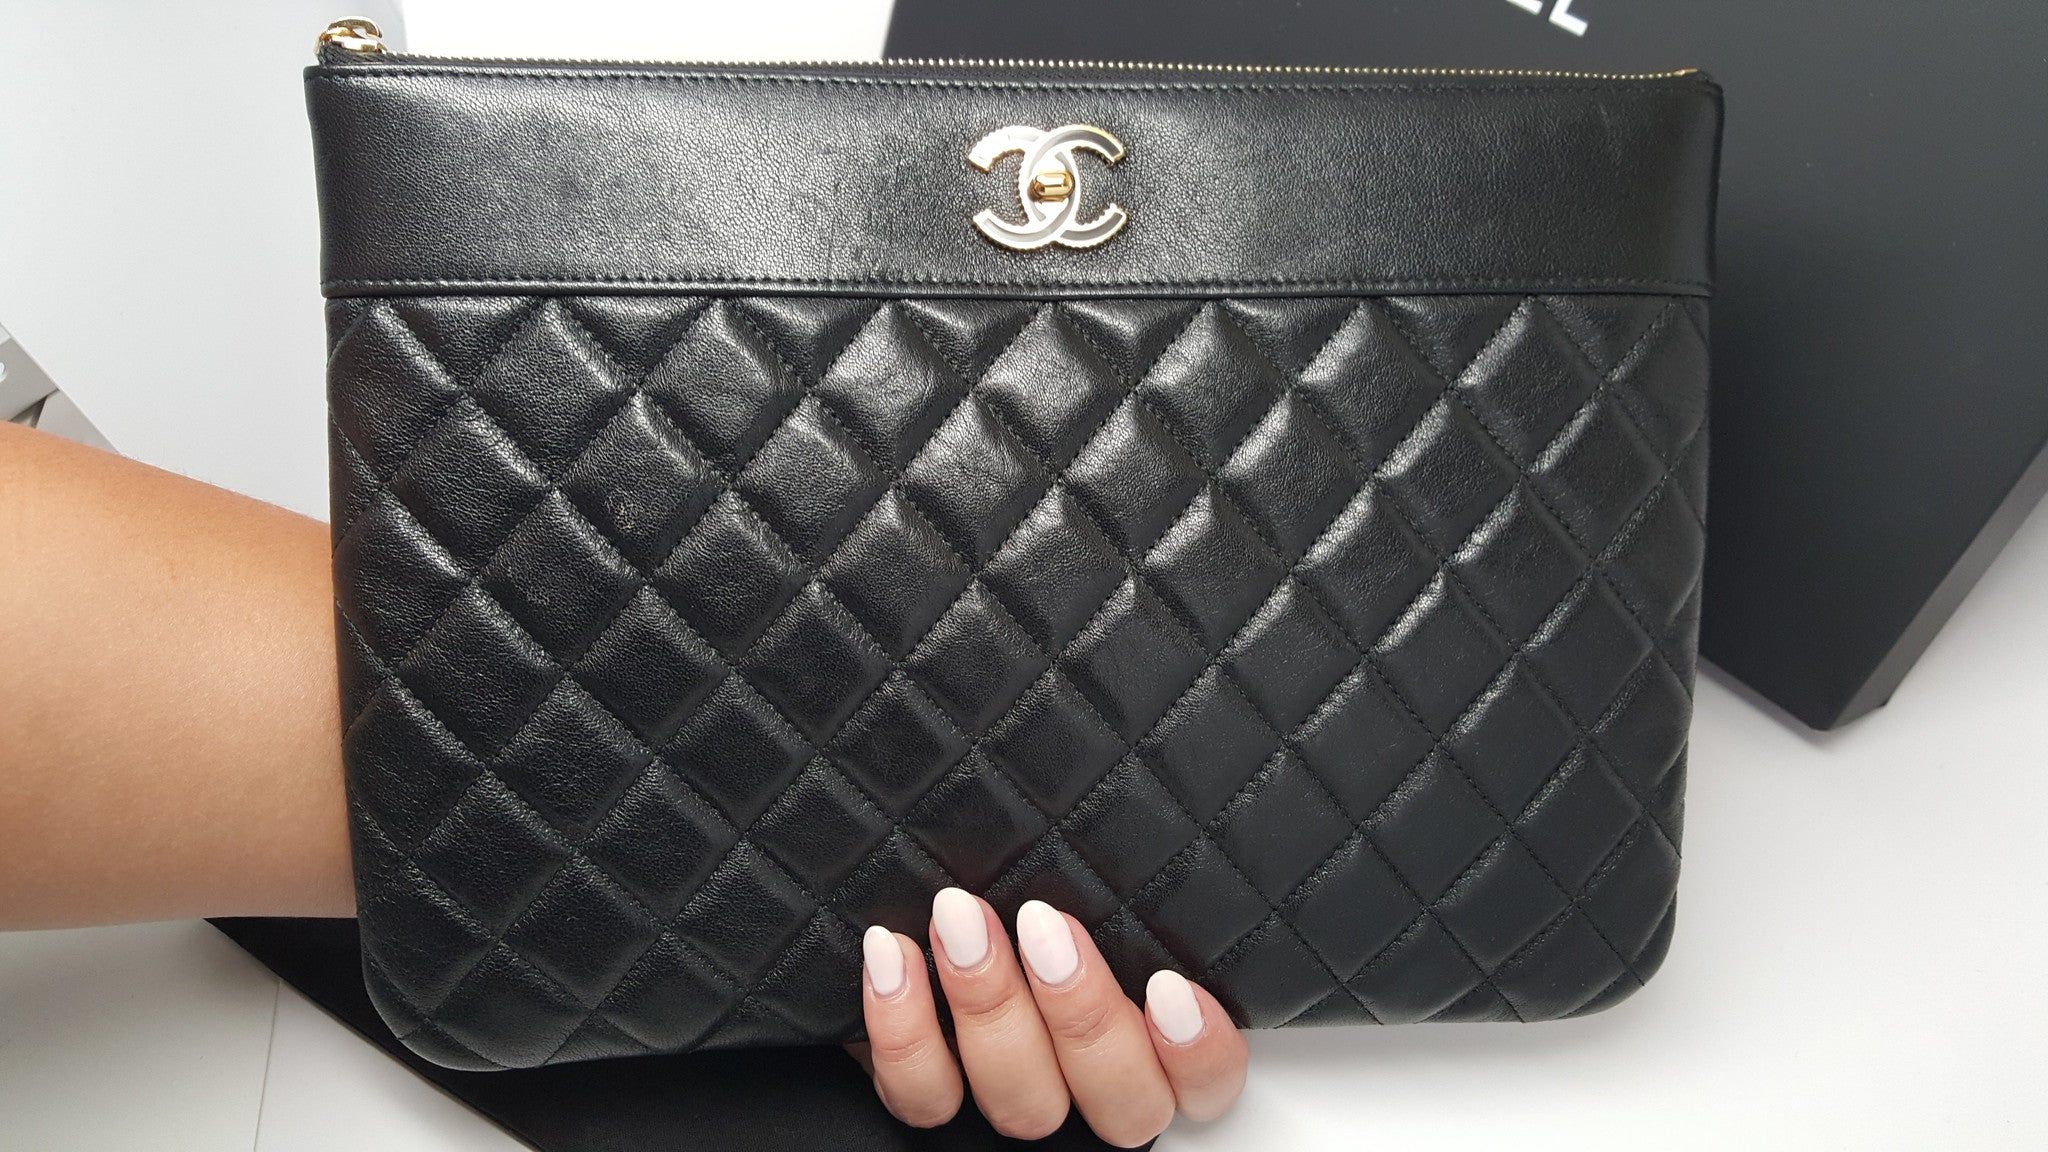 CHANEL QUILTED MEDIUM O CASE IN LAMBSKIN LEATHER